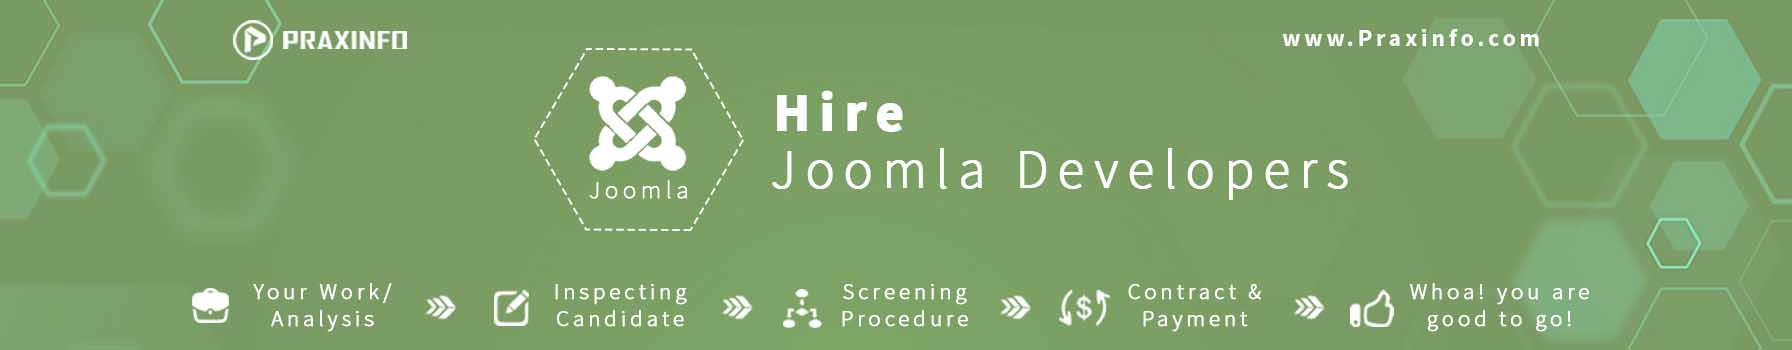 hire-Joomla-developer-banner.jpg